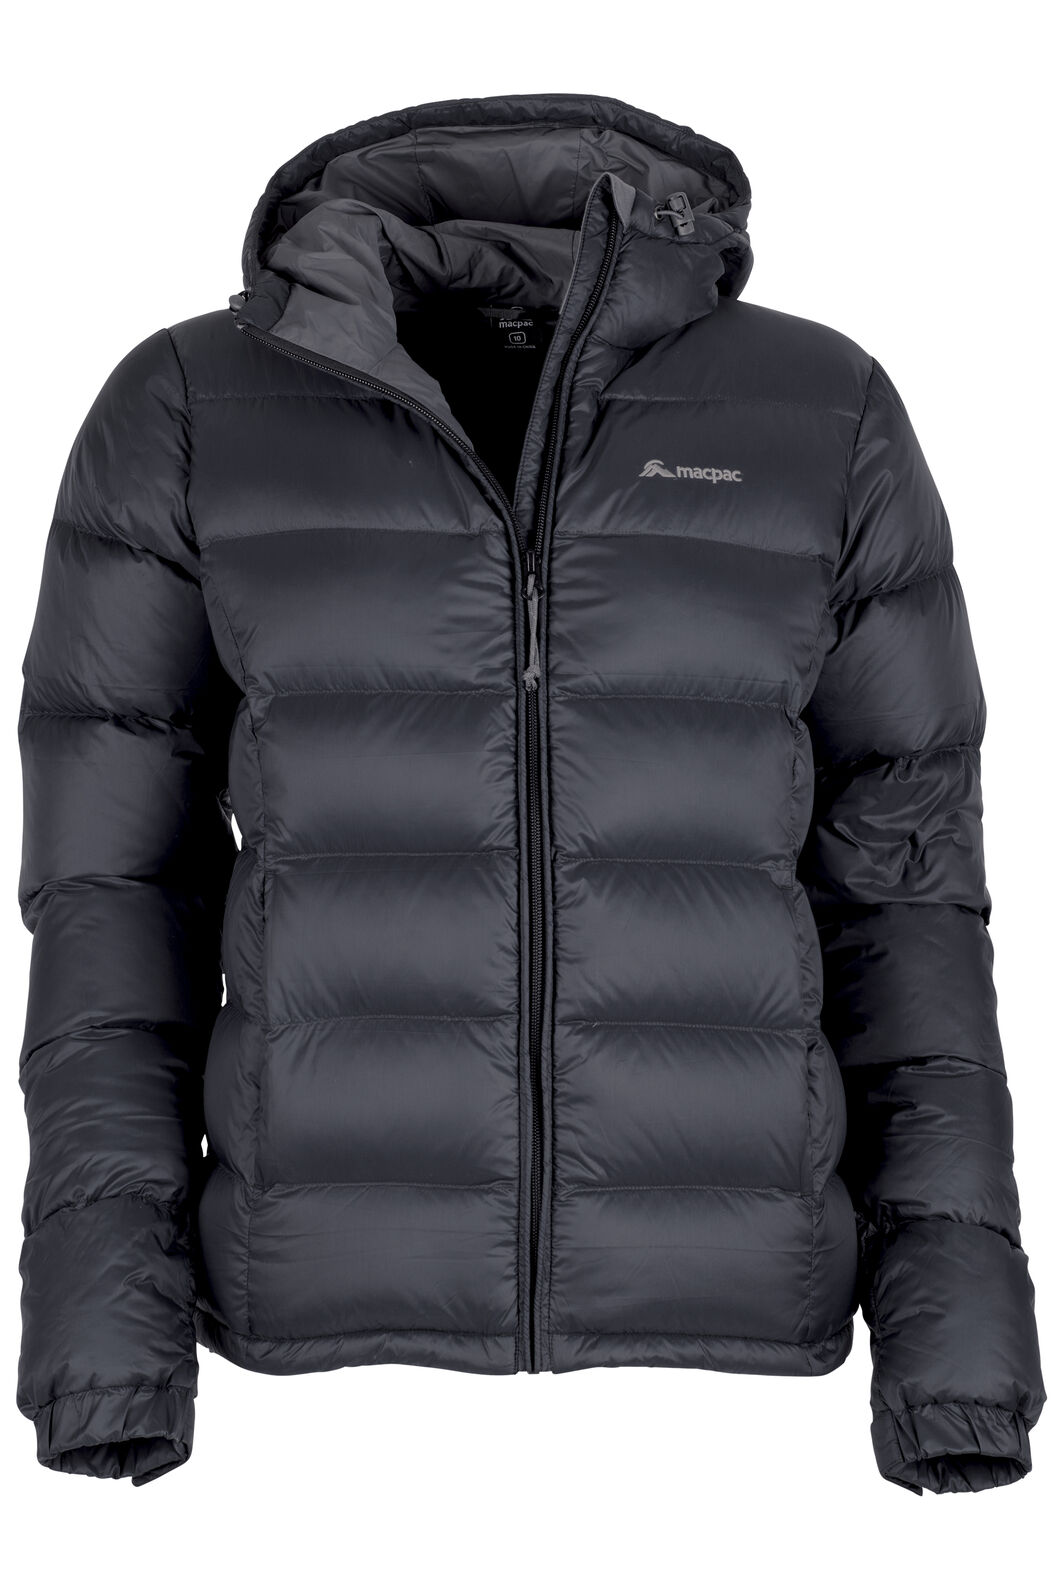 Halo Hooded Down Jacket - Women's, Black, hi-res